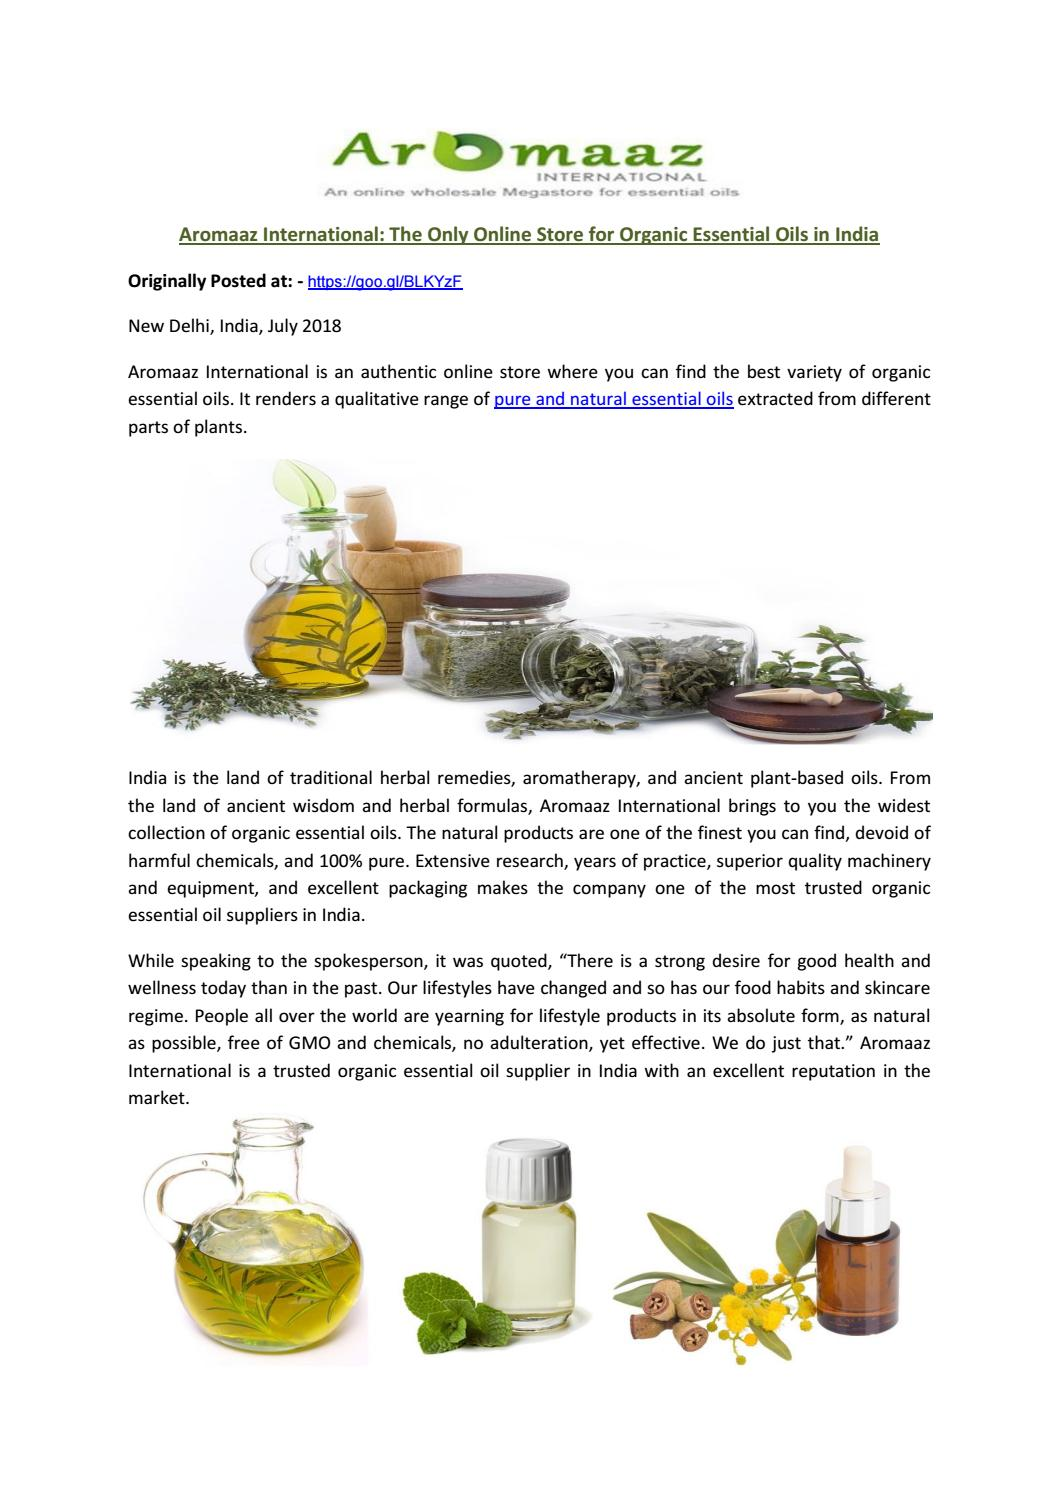 Aromaaz International: The Only Online Store for Organic